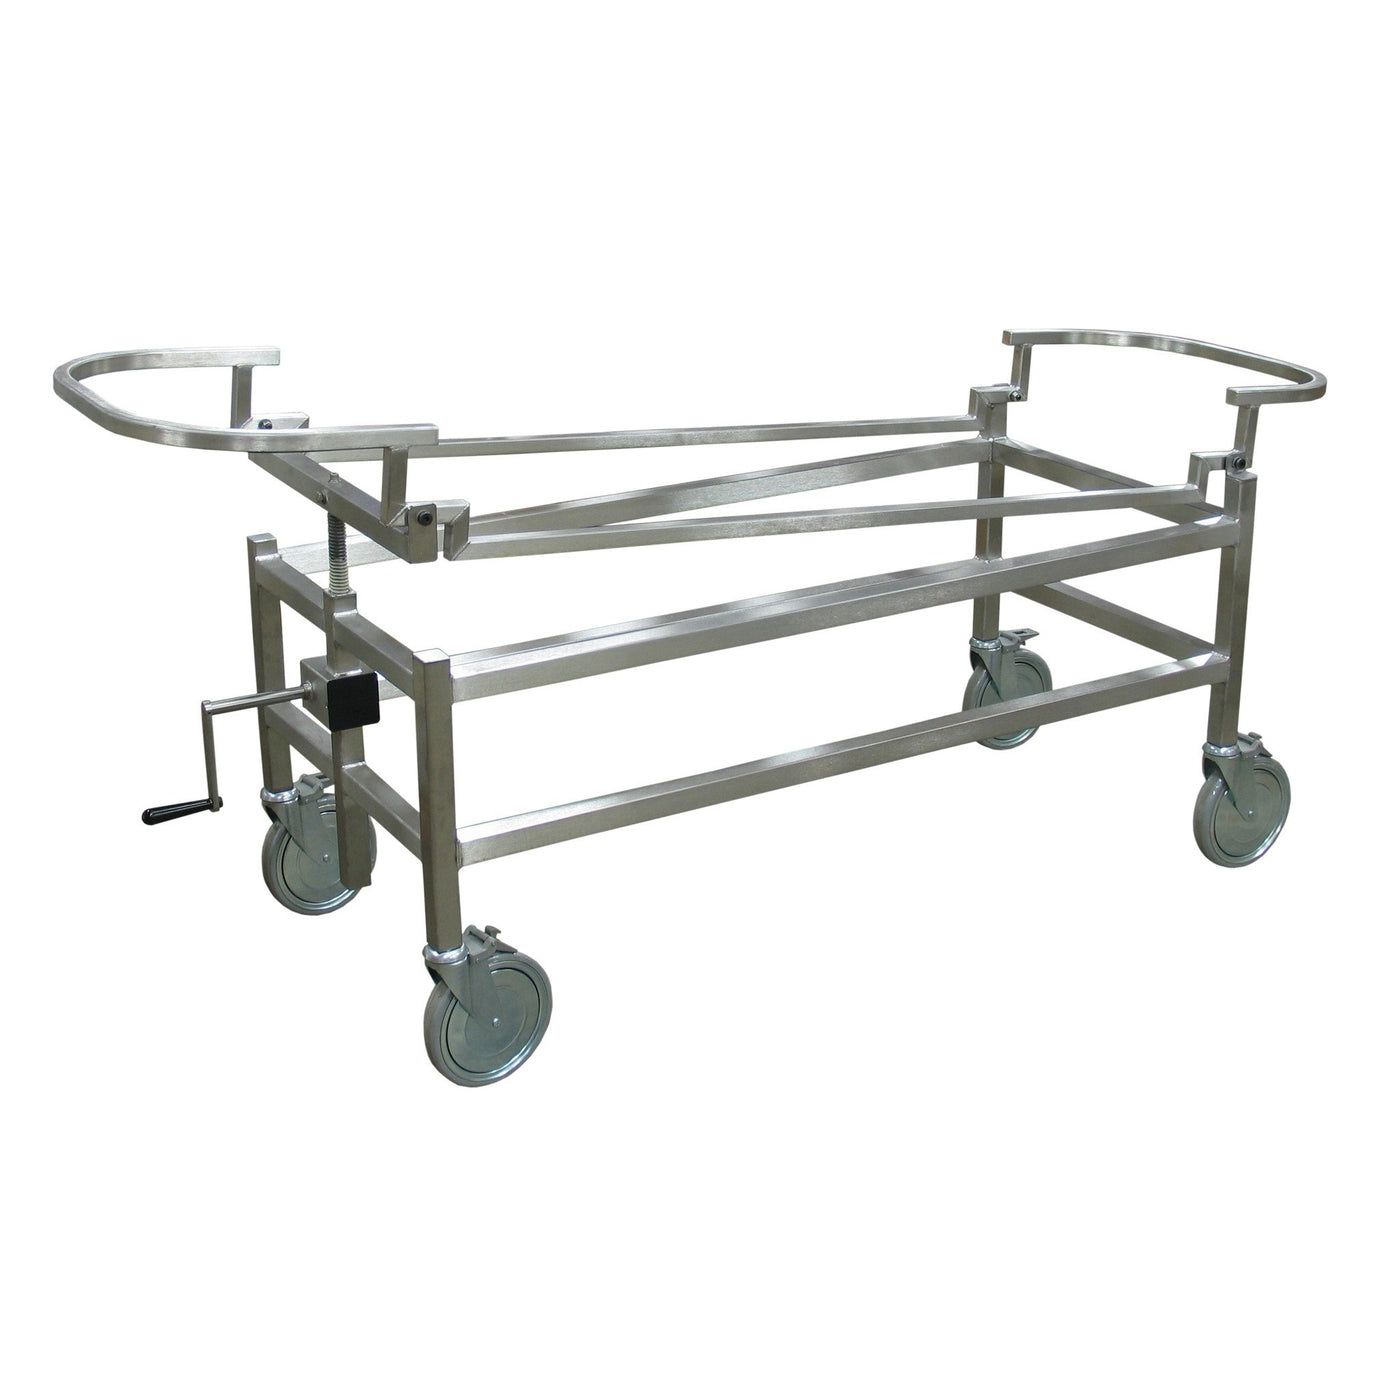 Hand Crank Autopsy Carriers-Body Transporter-Mortech Manufacturing Company Inc. Quality Stainless Steel Autopsy, Morgue, Funeral Home, Necropsy, Veterinary / Anatomy, Dissection Equipment and Accessories